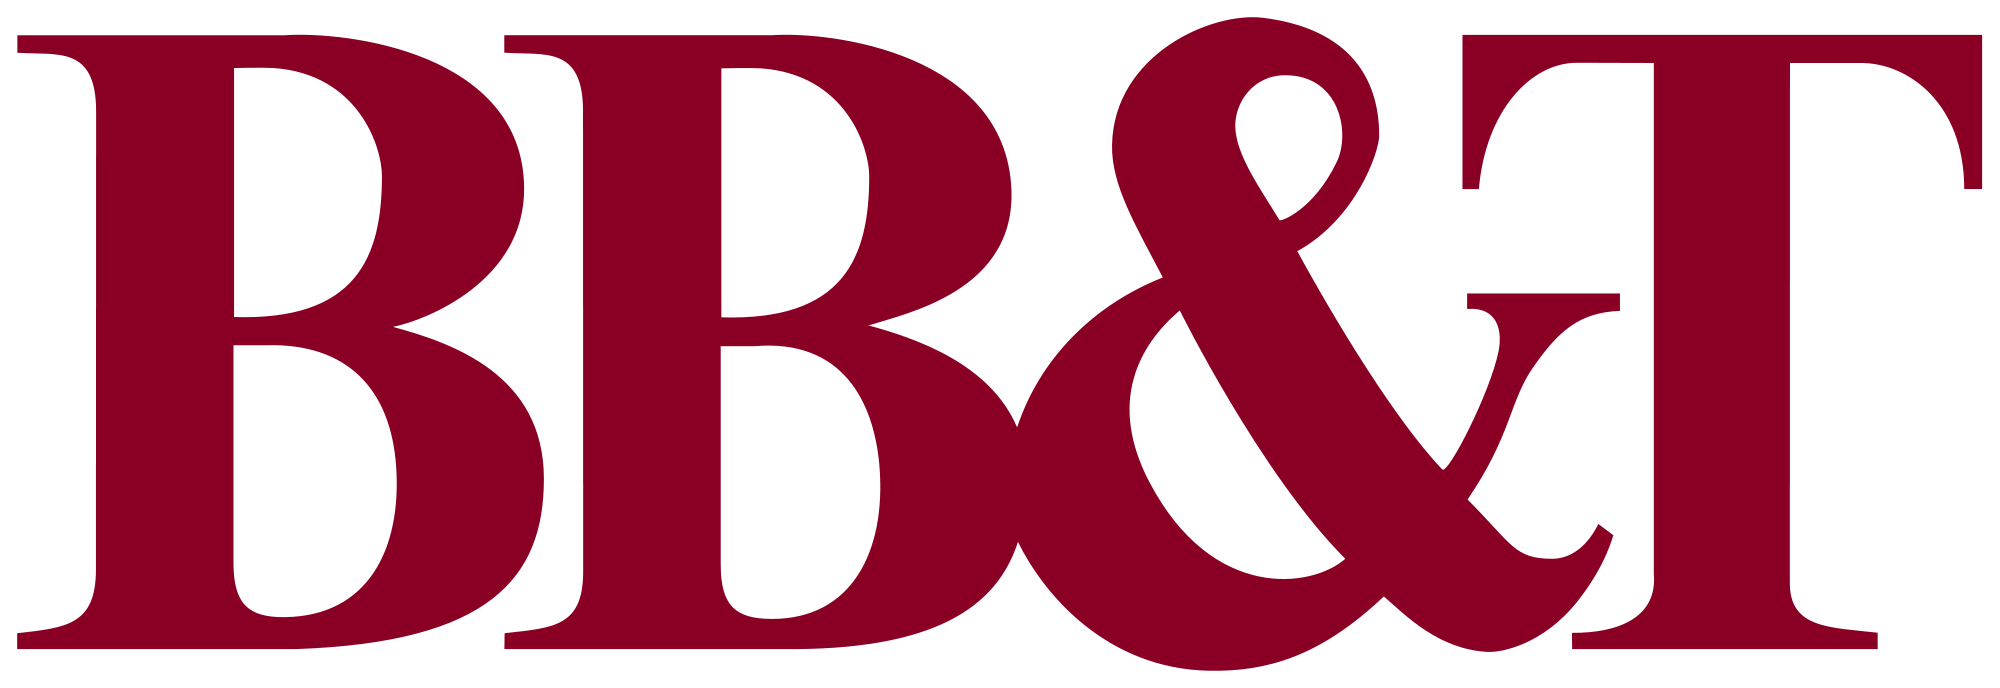 Bb&t logo png. File bb t svg